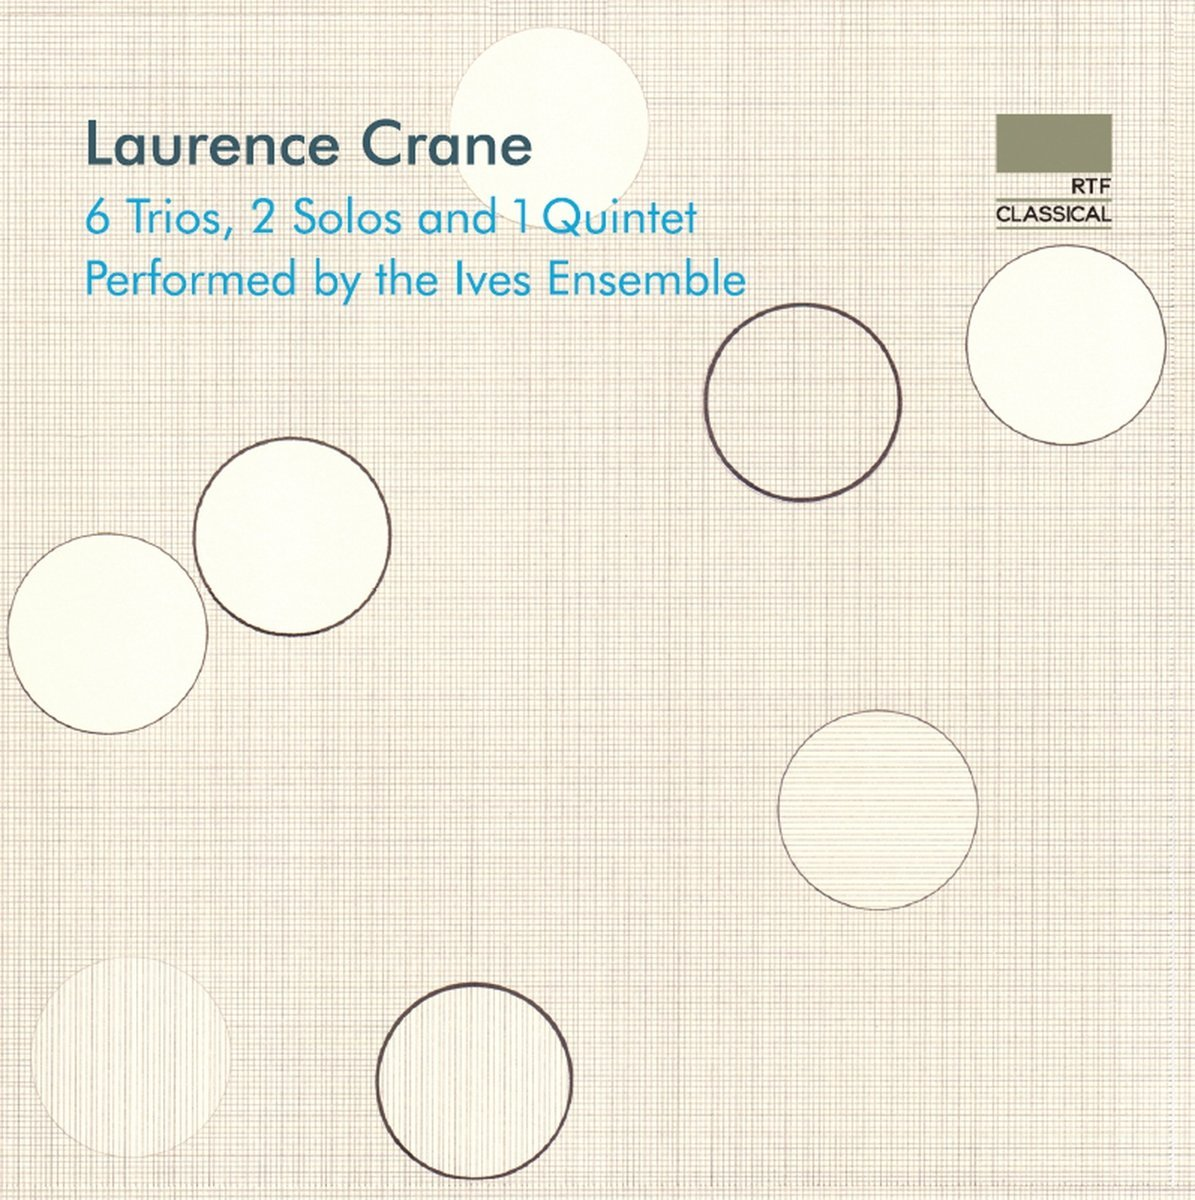 Laurence Crane - 6 Trios, 2 Solos and 1 Quintet